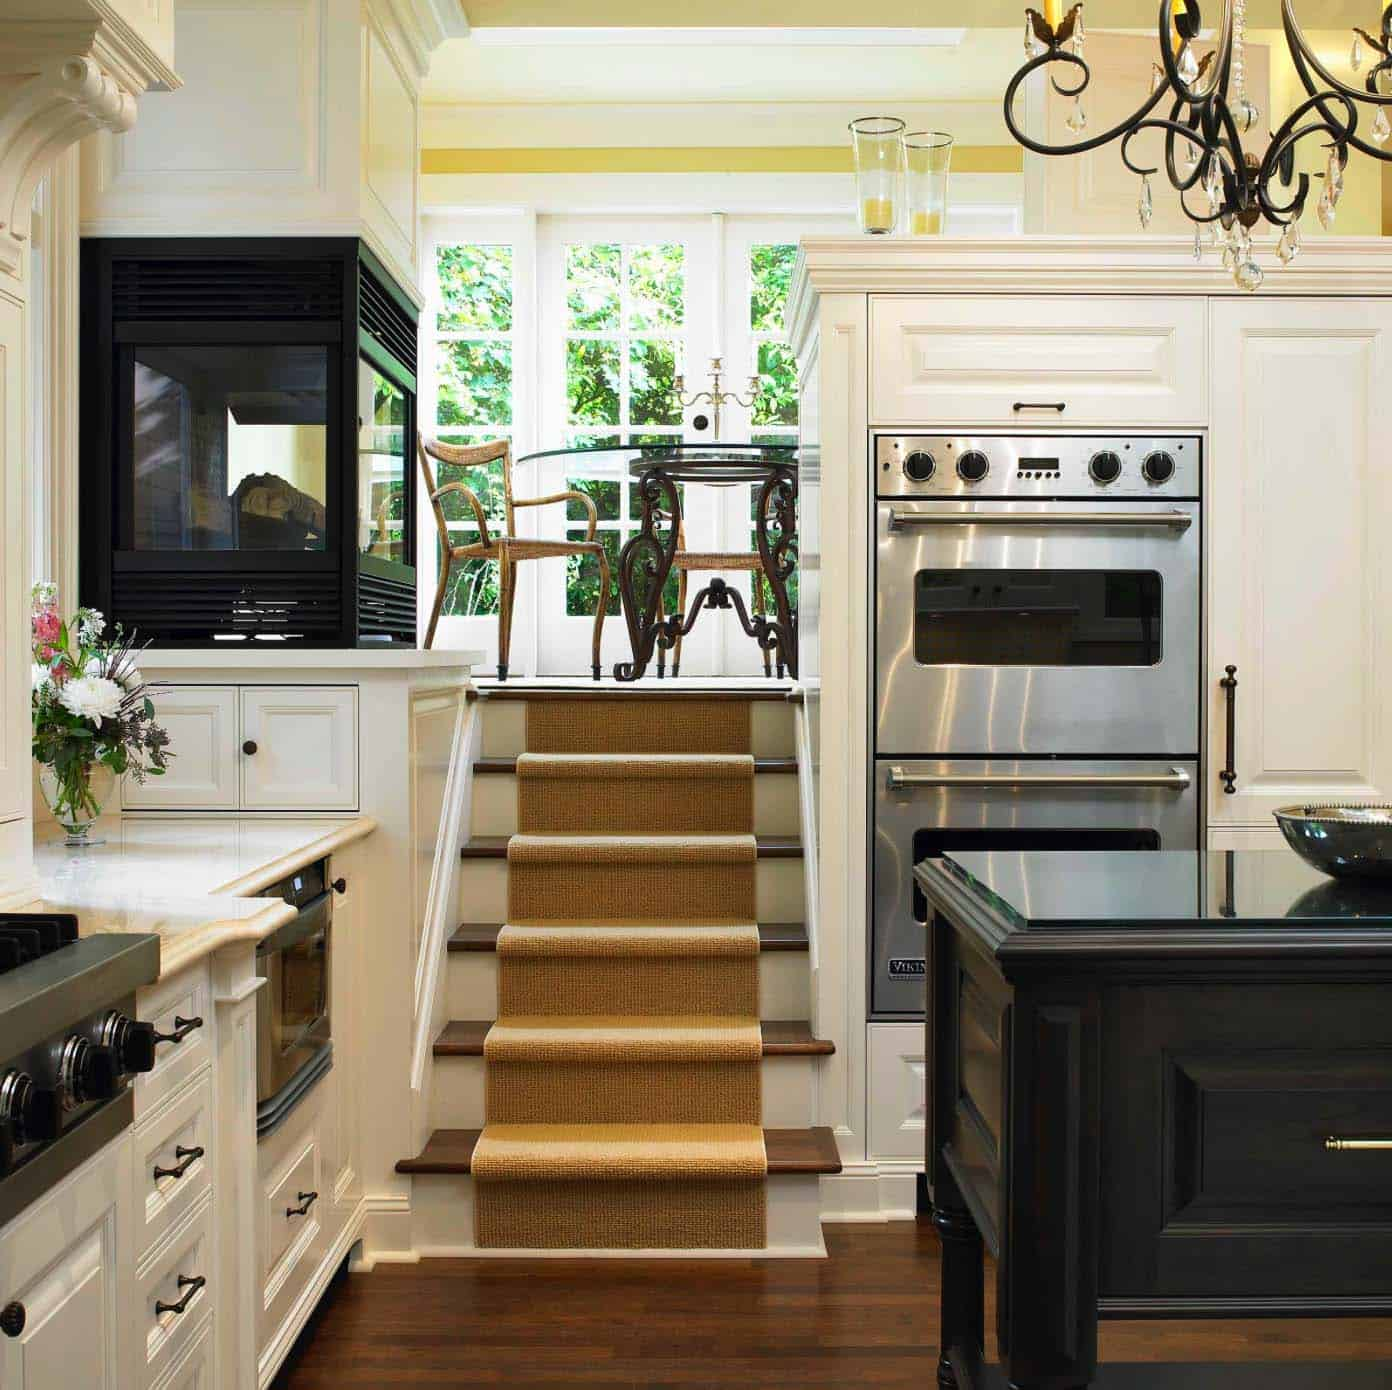 Kitchen Showcasing Cozy Fireplace-14-1 Kindesign